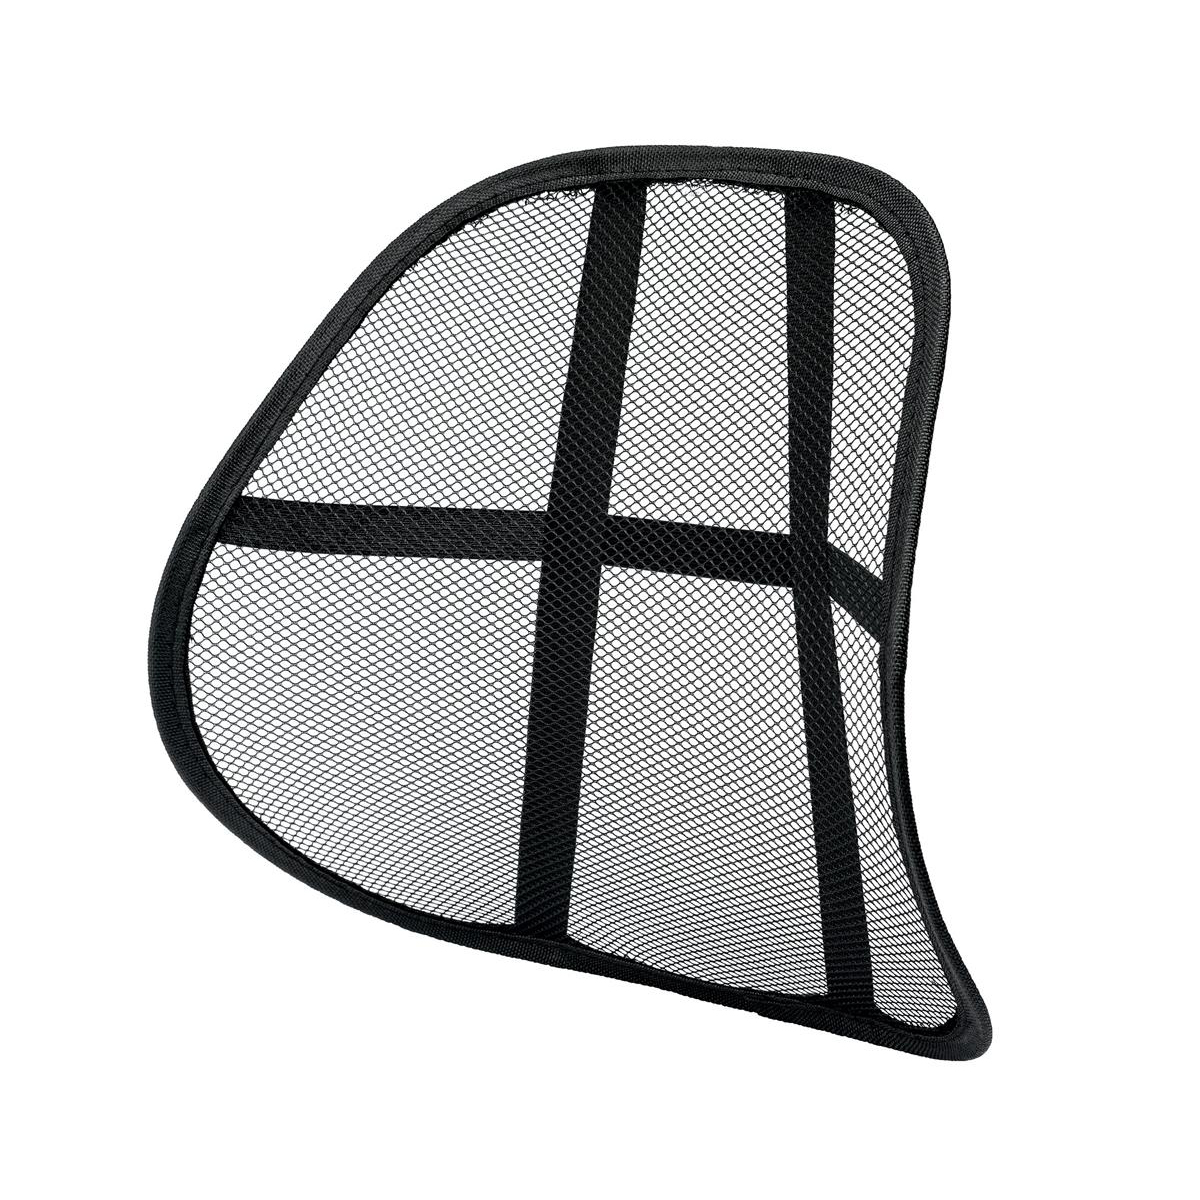 Chair 5 Star Office Mesh Back Rest Black Ref 936677